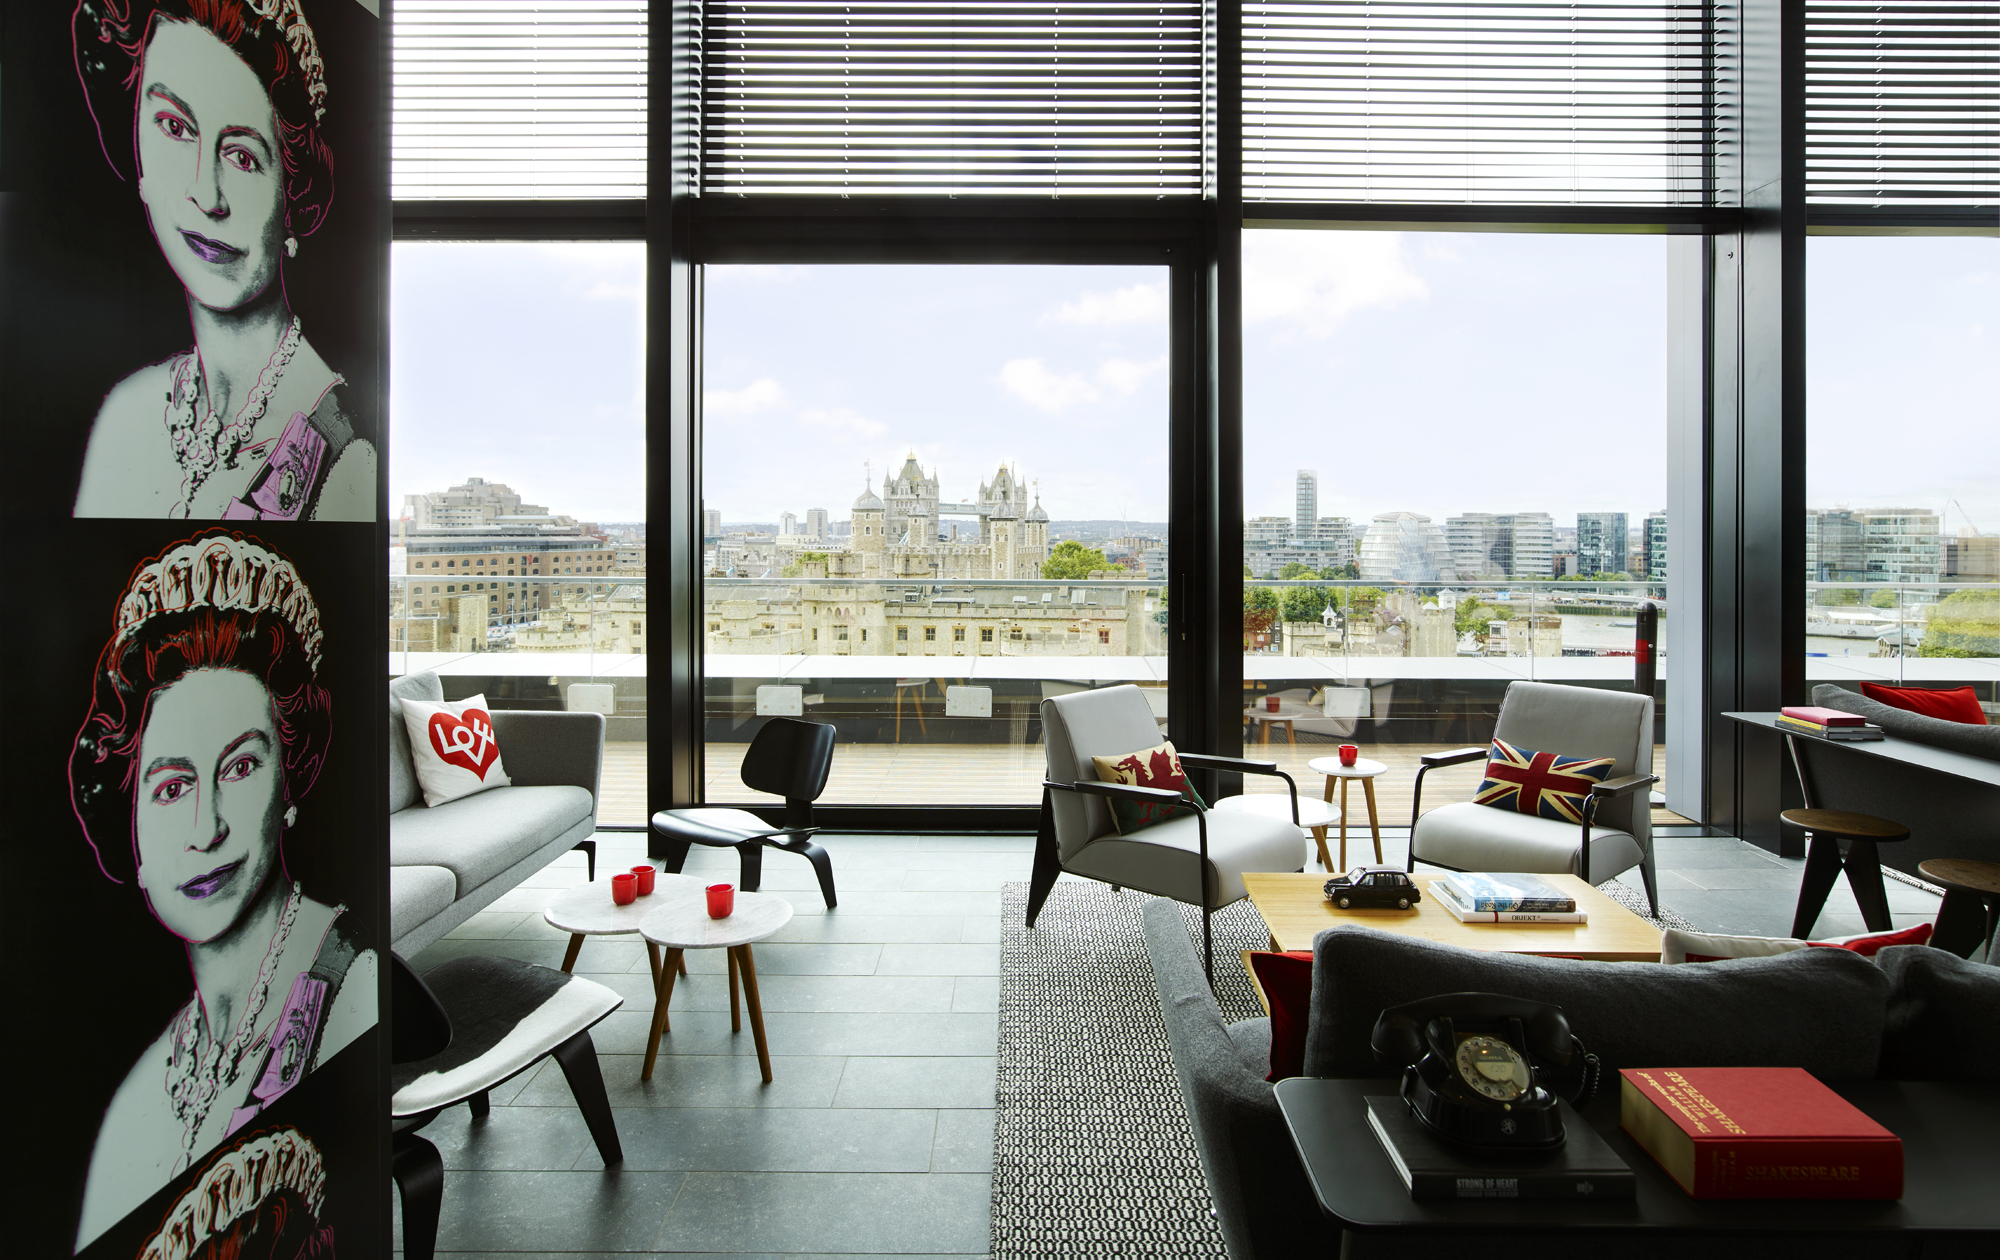 CitizenM Tower of London hotels arty designer venue hire events group bookings lounge